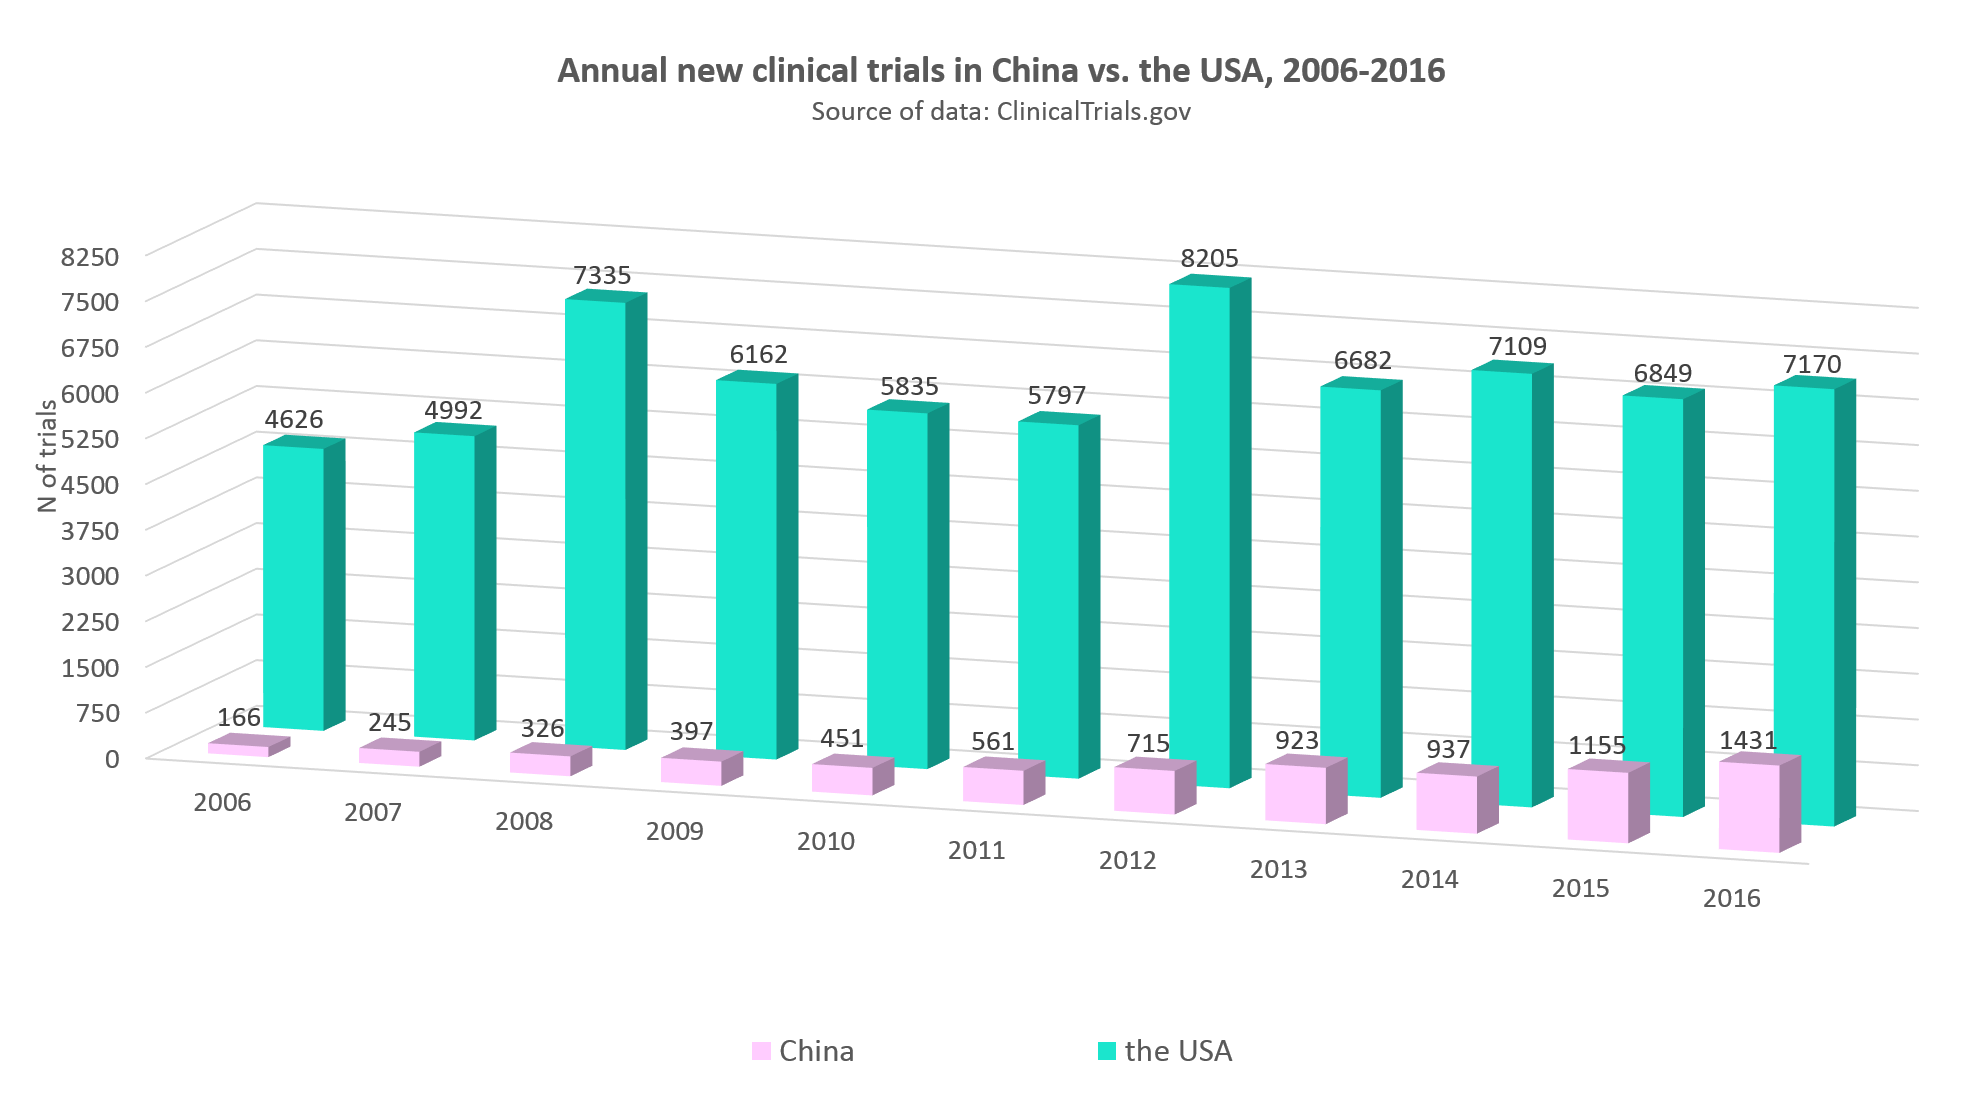 Annual statistics of clinical trials in China vs. the USA, 2006-2016